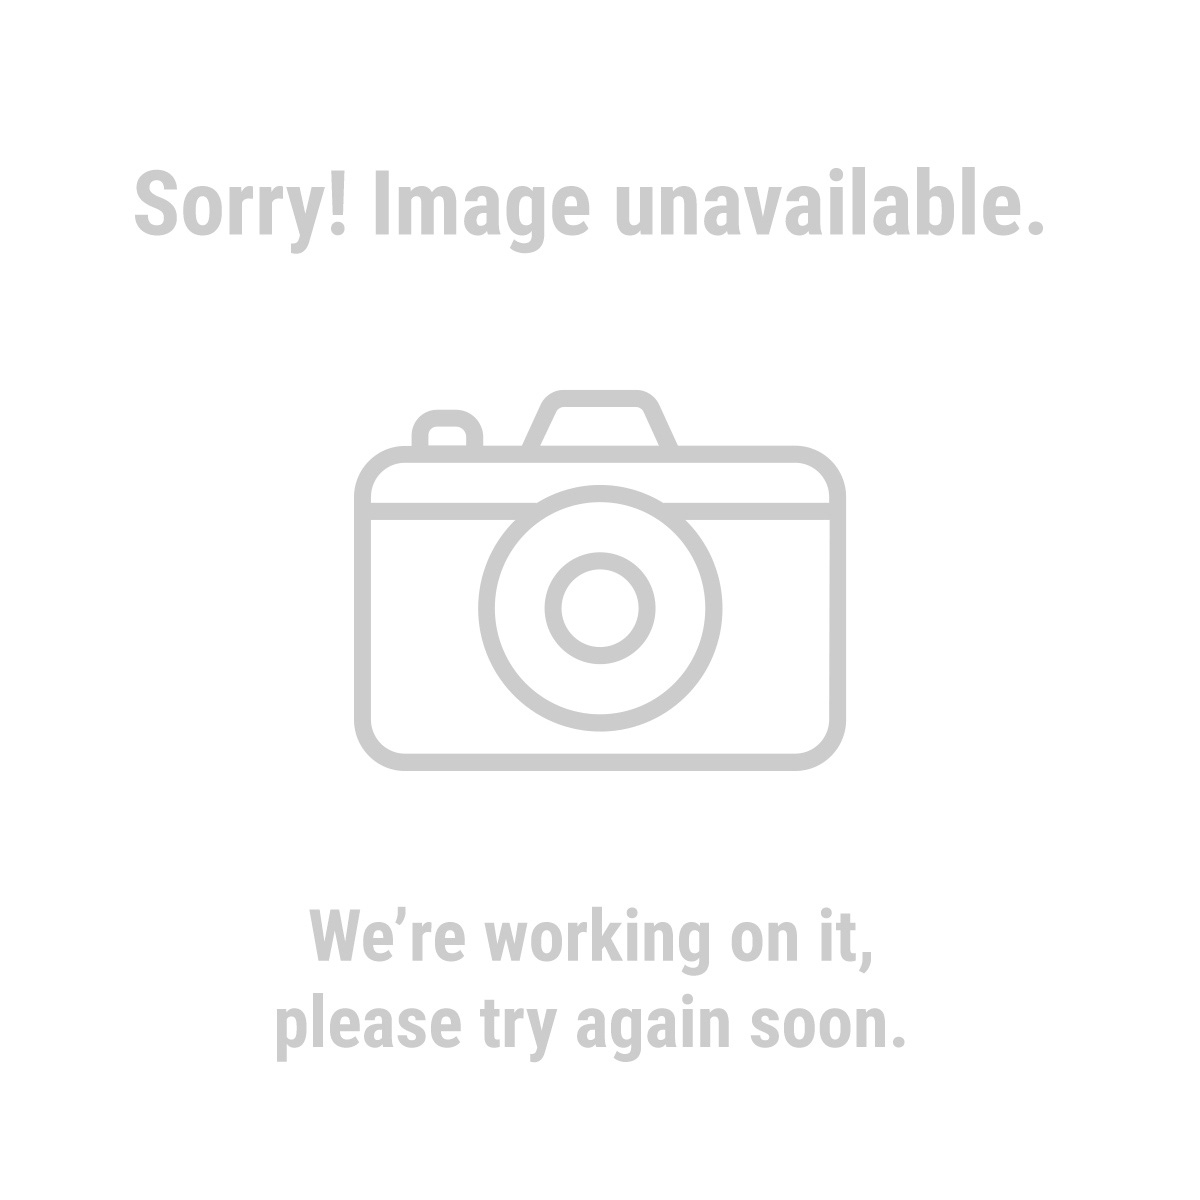 Pittsburgh® 69057 500 Ft. Construction Line, Pink